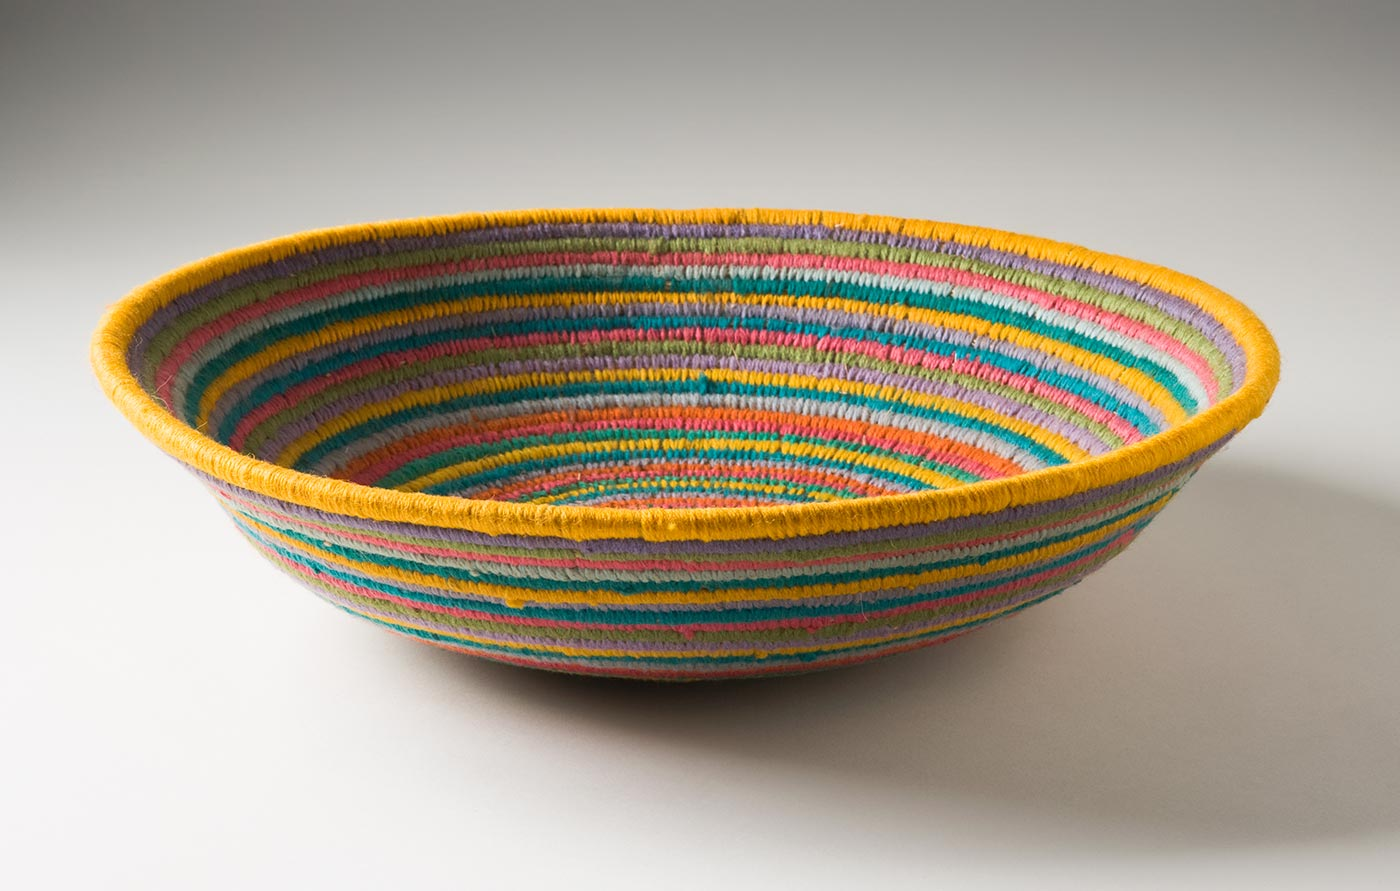 A multi-coloured circular coiled bowl-shaped basket made of yarn and plant fibre. The centre of the basket is in yellow yarn followed by horizontal stripes of yarn in lime green, lavender, pink, orange, yellow and light blue grey. - click to view larger image